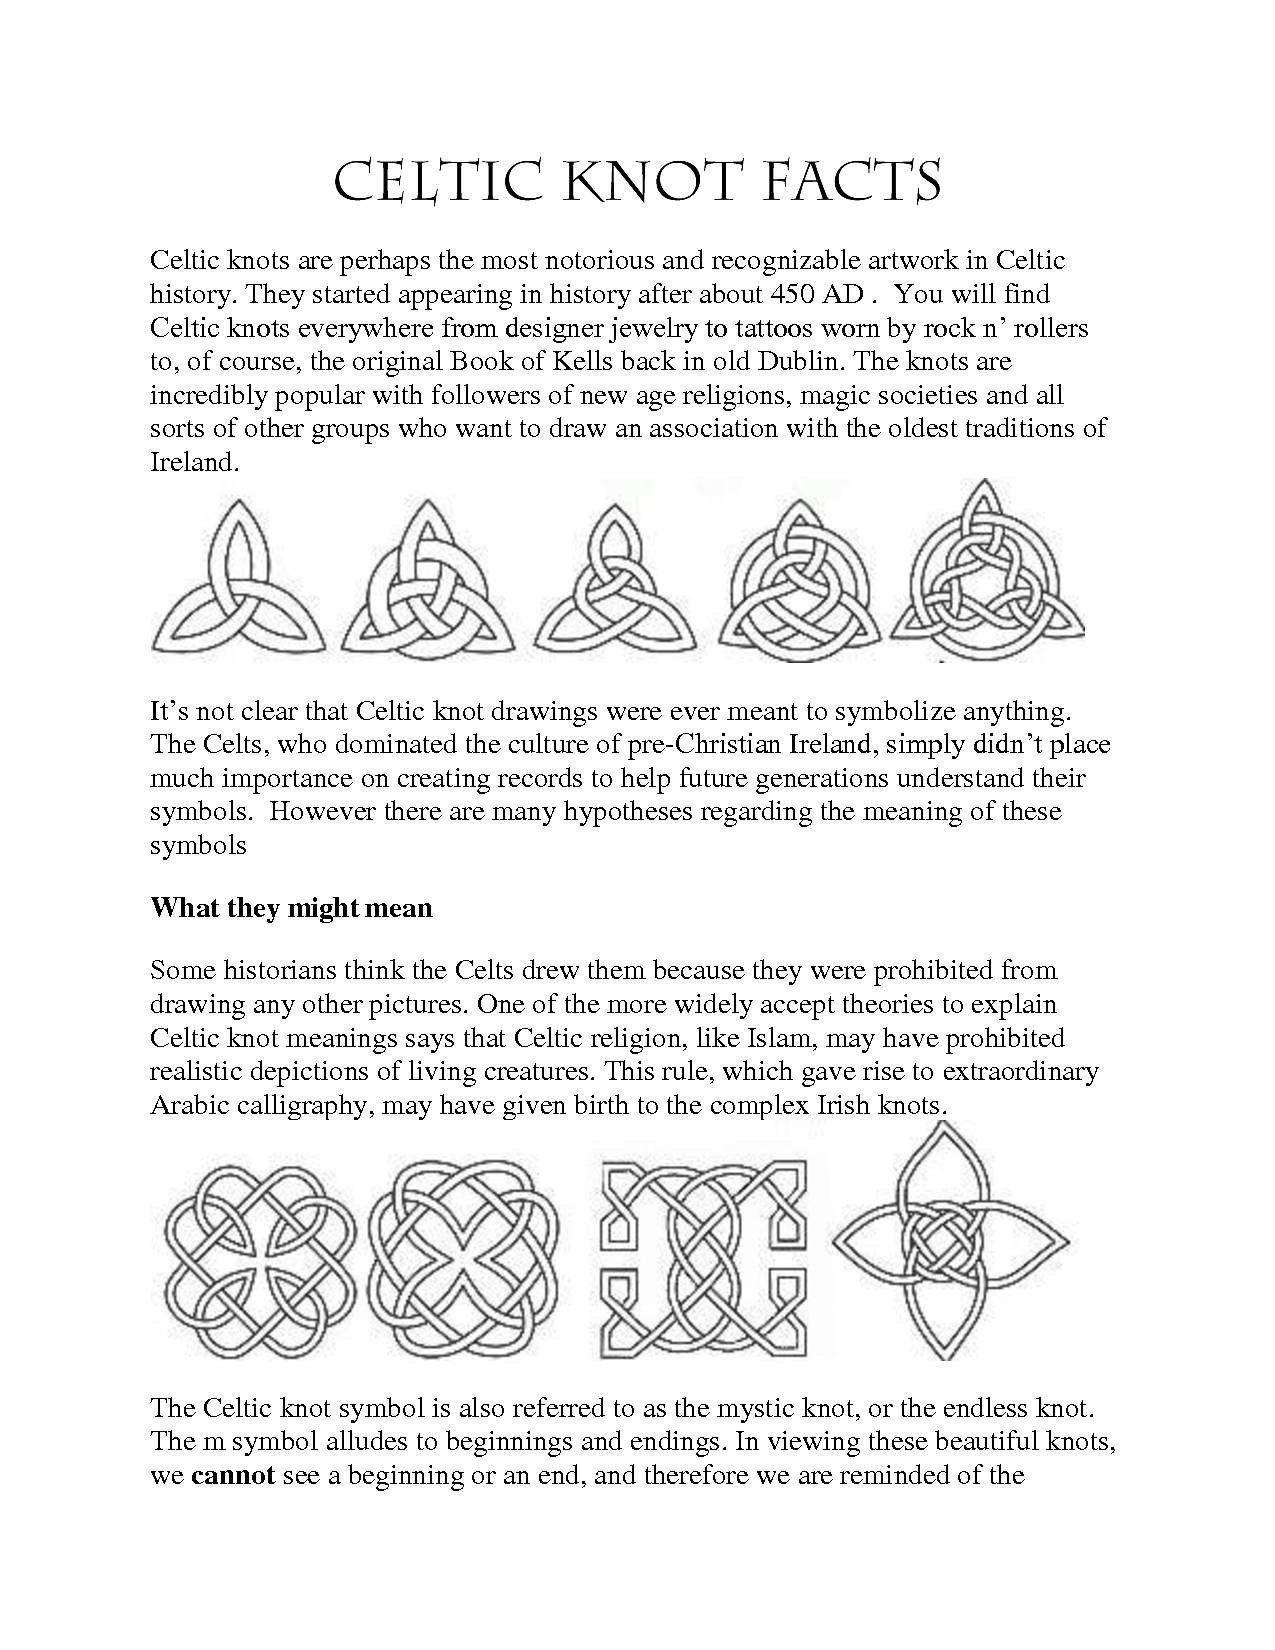 Celtic Designs And Their Meanings Celtic Symbols And Their